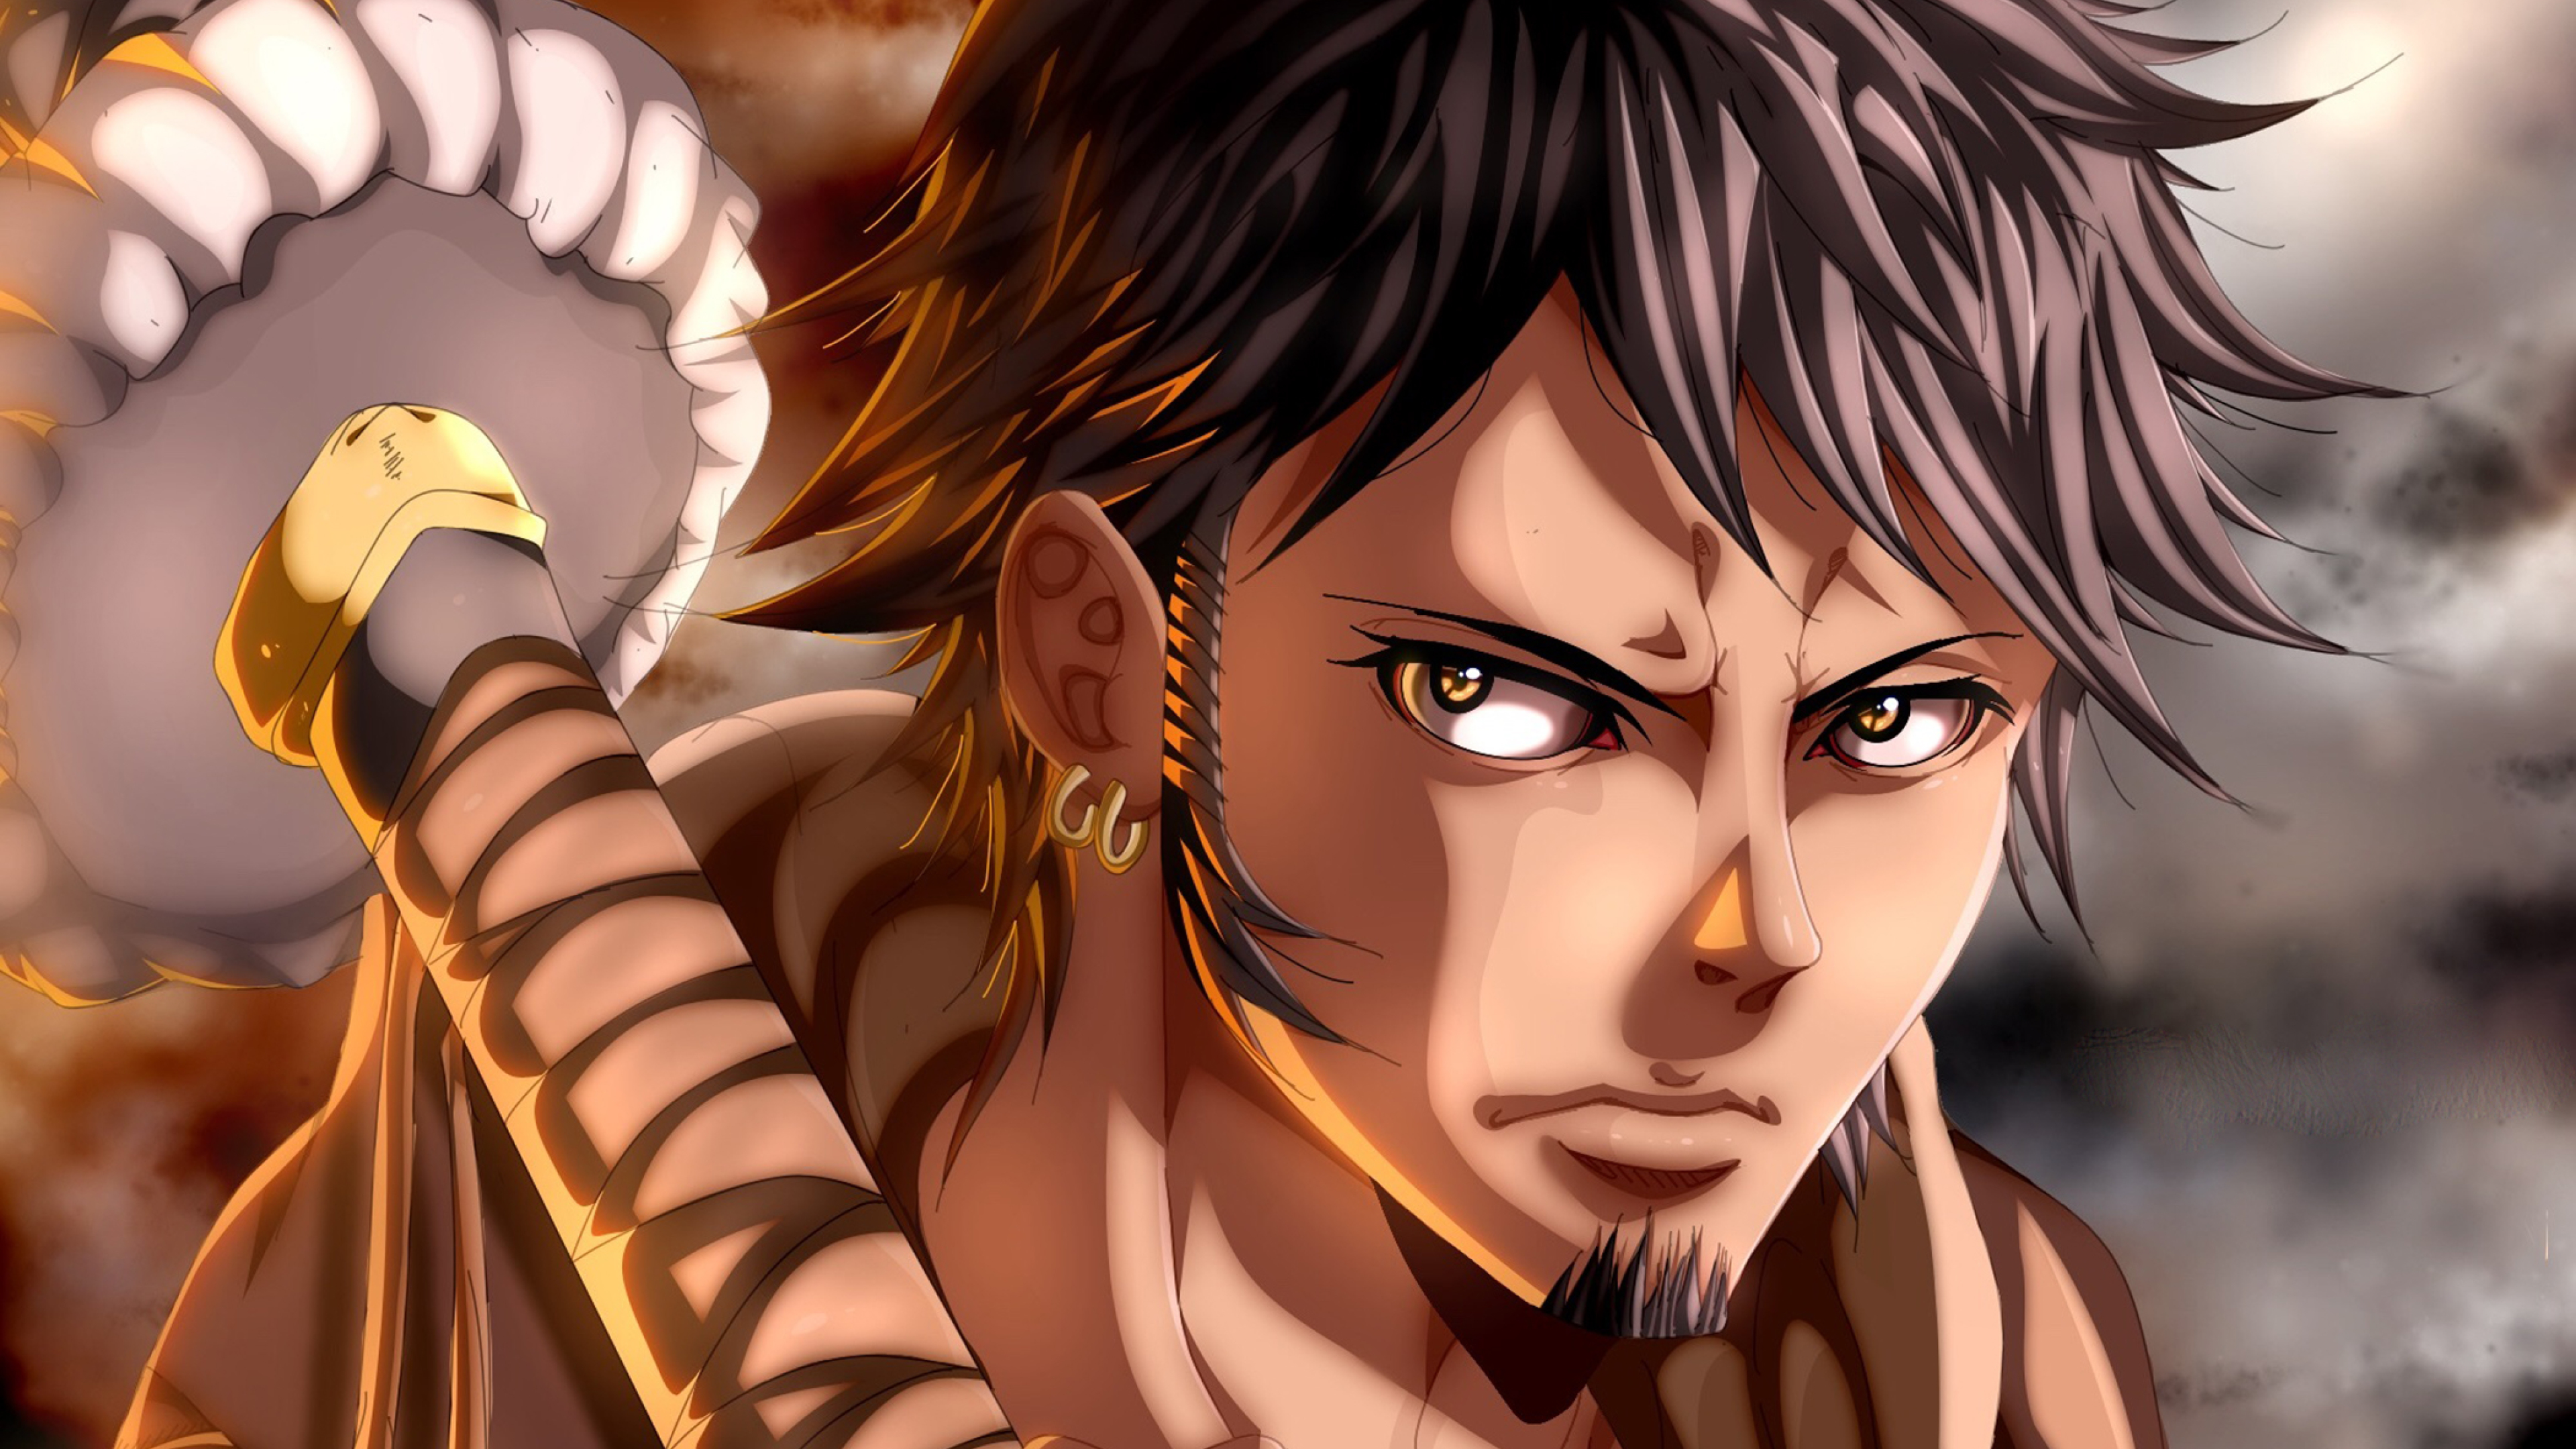 Anime Wallpaper One Piece 3051870 Hd Wallpaper Backgrounds Download